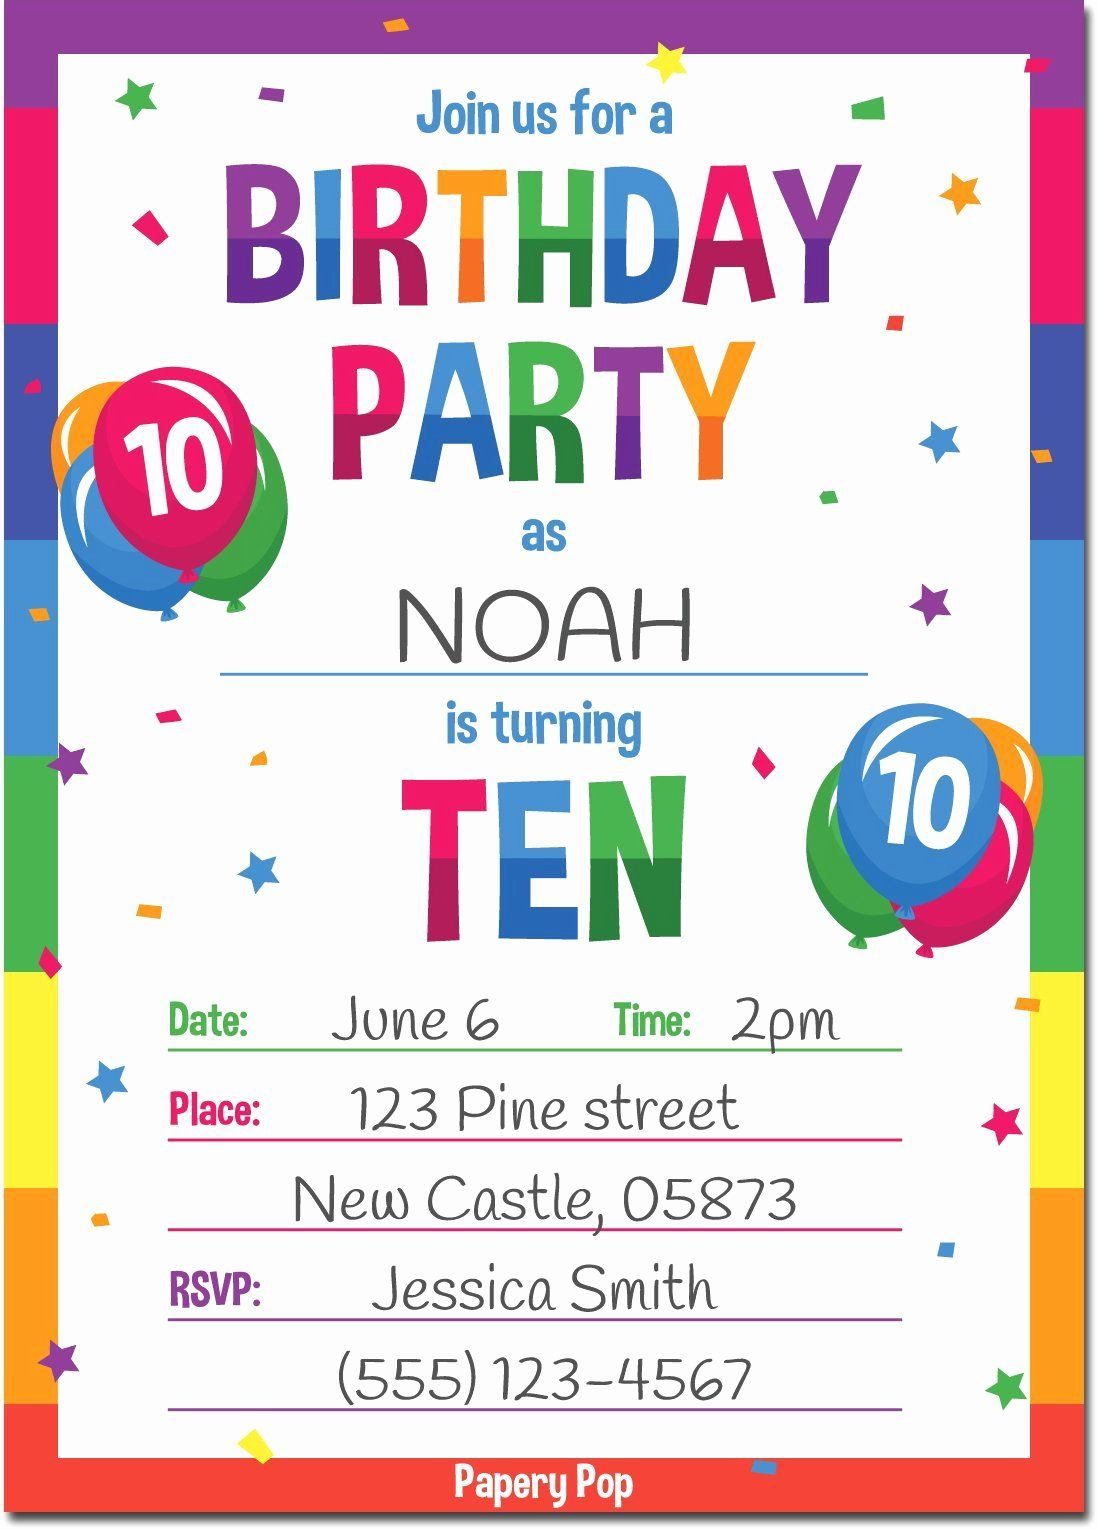 Boys Birthday Party Invitation Template Awesome 5 Year Old Birthd